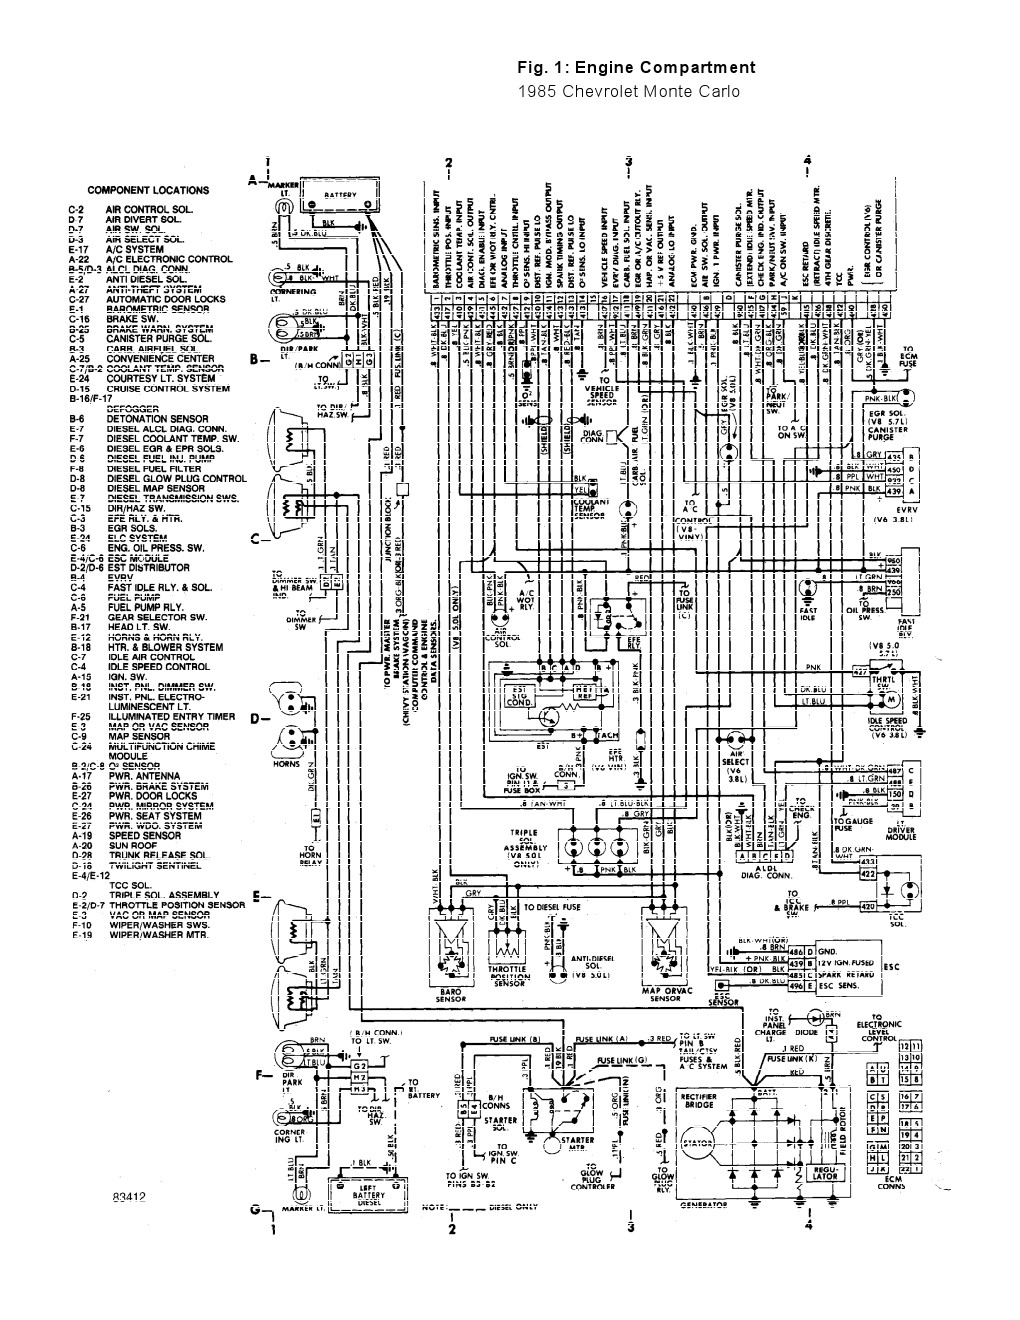 1984 Monte Carlo Wiring Diagram Library 1987 Ss Fuse Box 1995 Transmission Electrical Camaro 2003